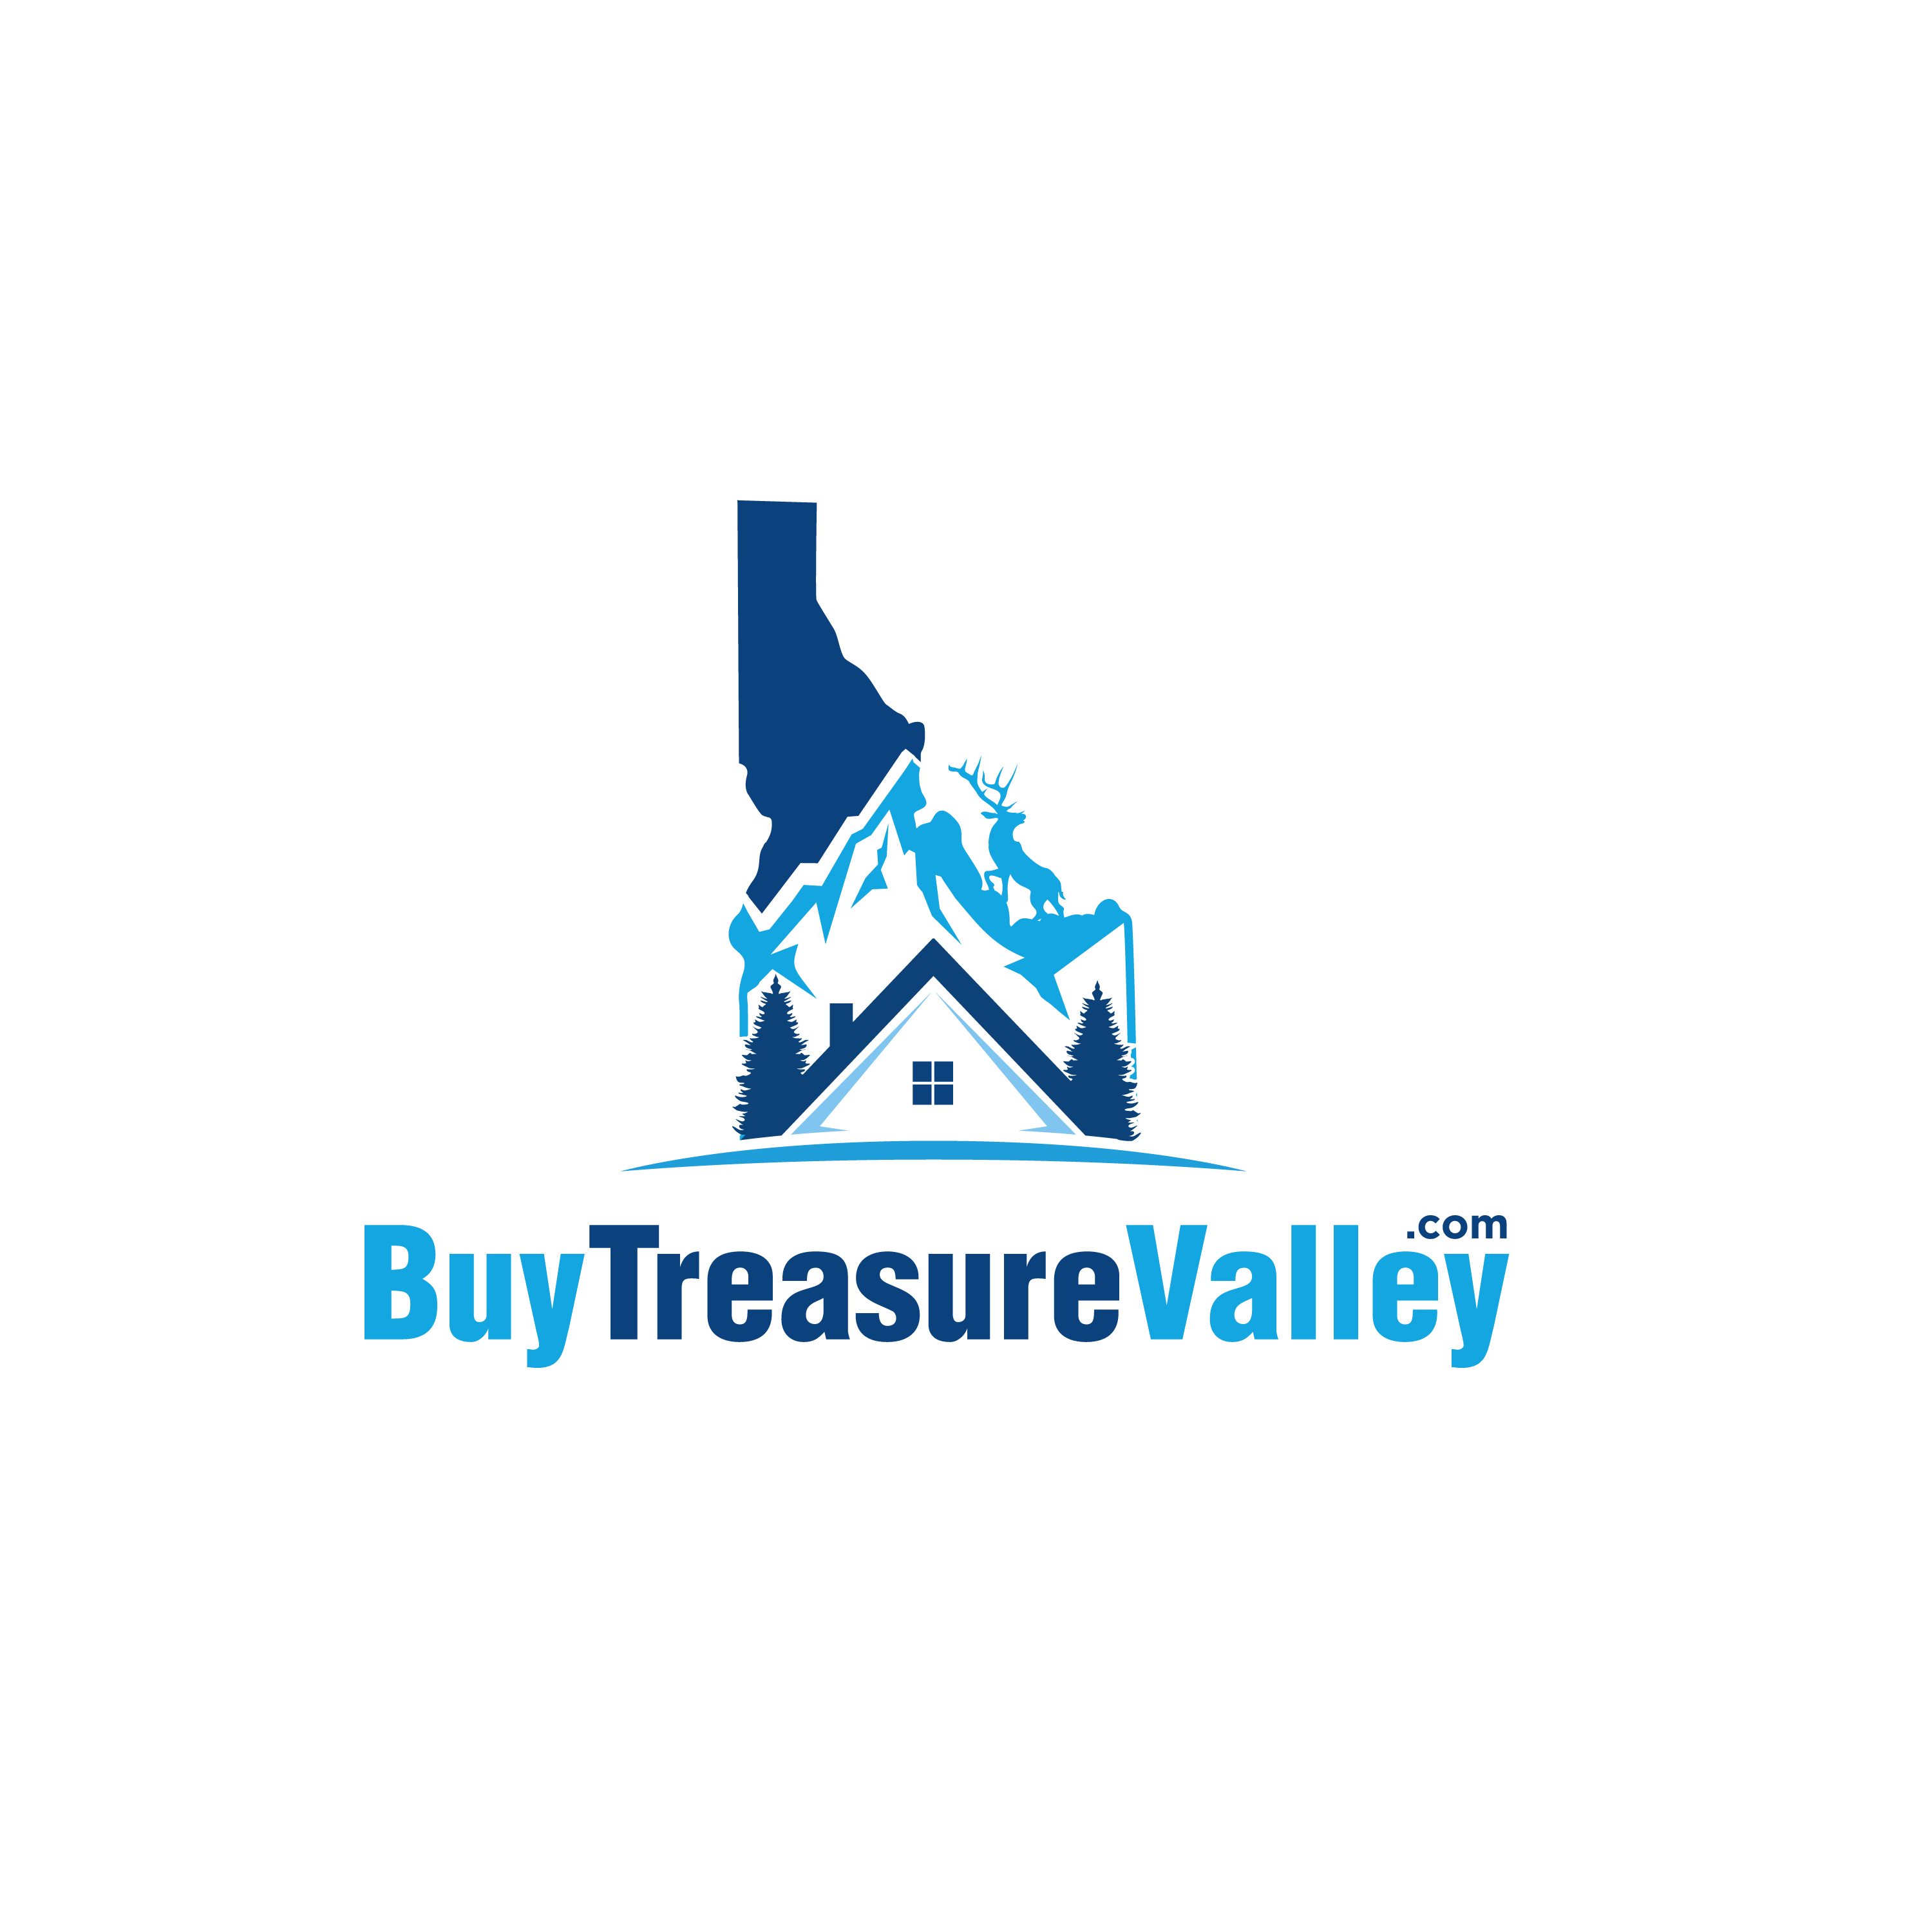 LOGO for NEW REAL ESTATE Agent in Scenic Treasure Valley Idaho